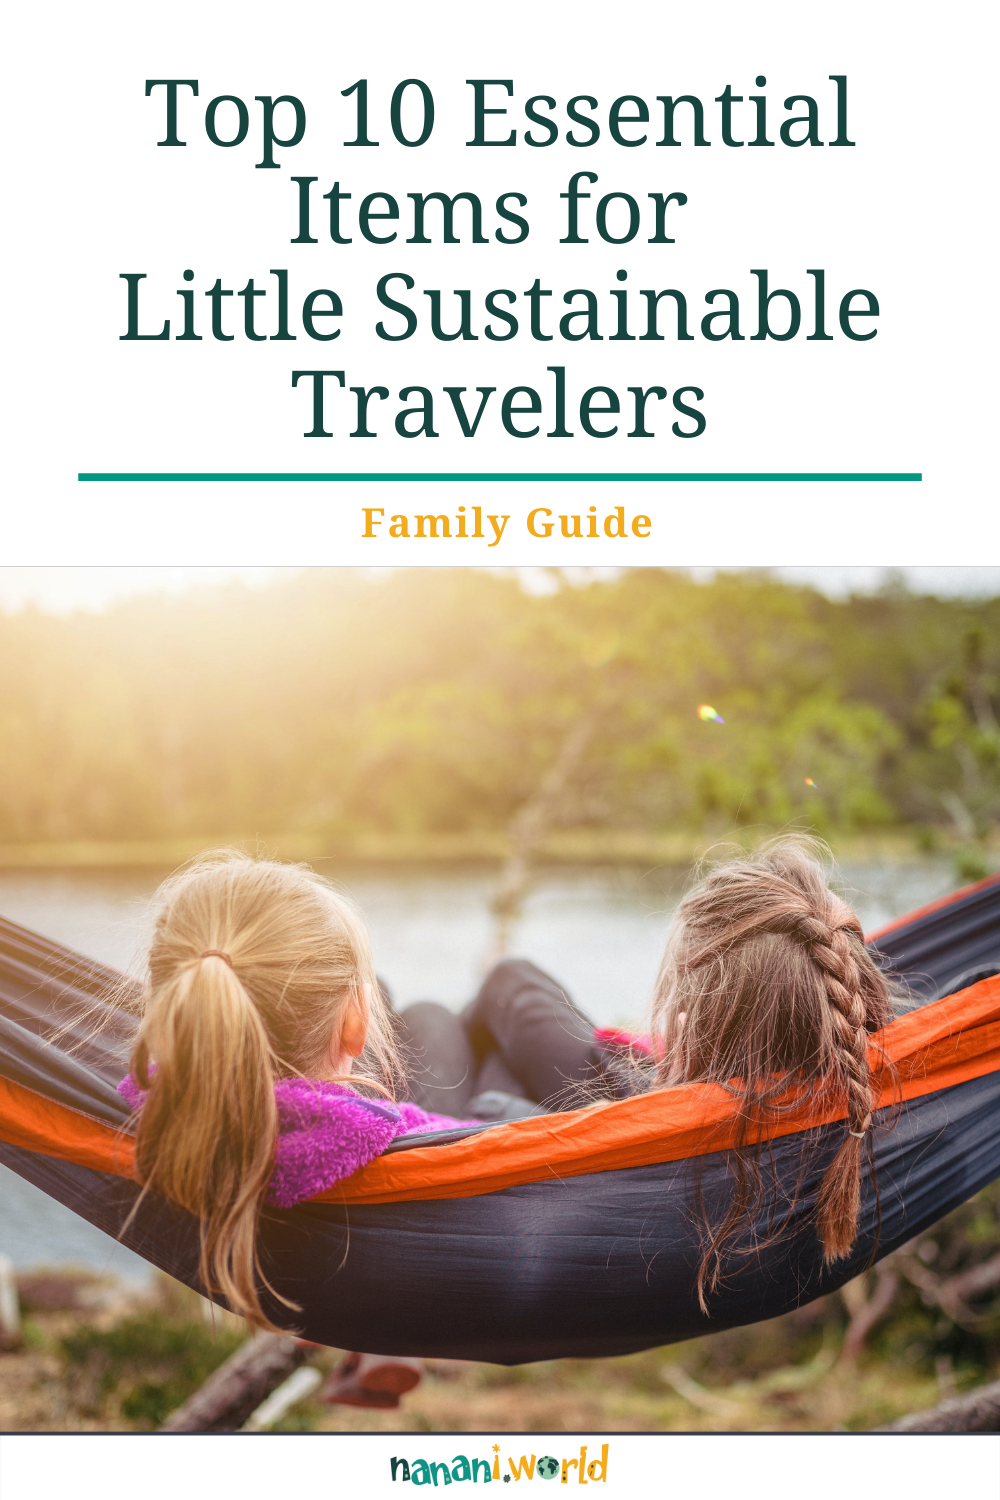 Top 10 Essential Items for Little Sustainable Travelers